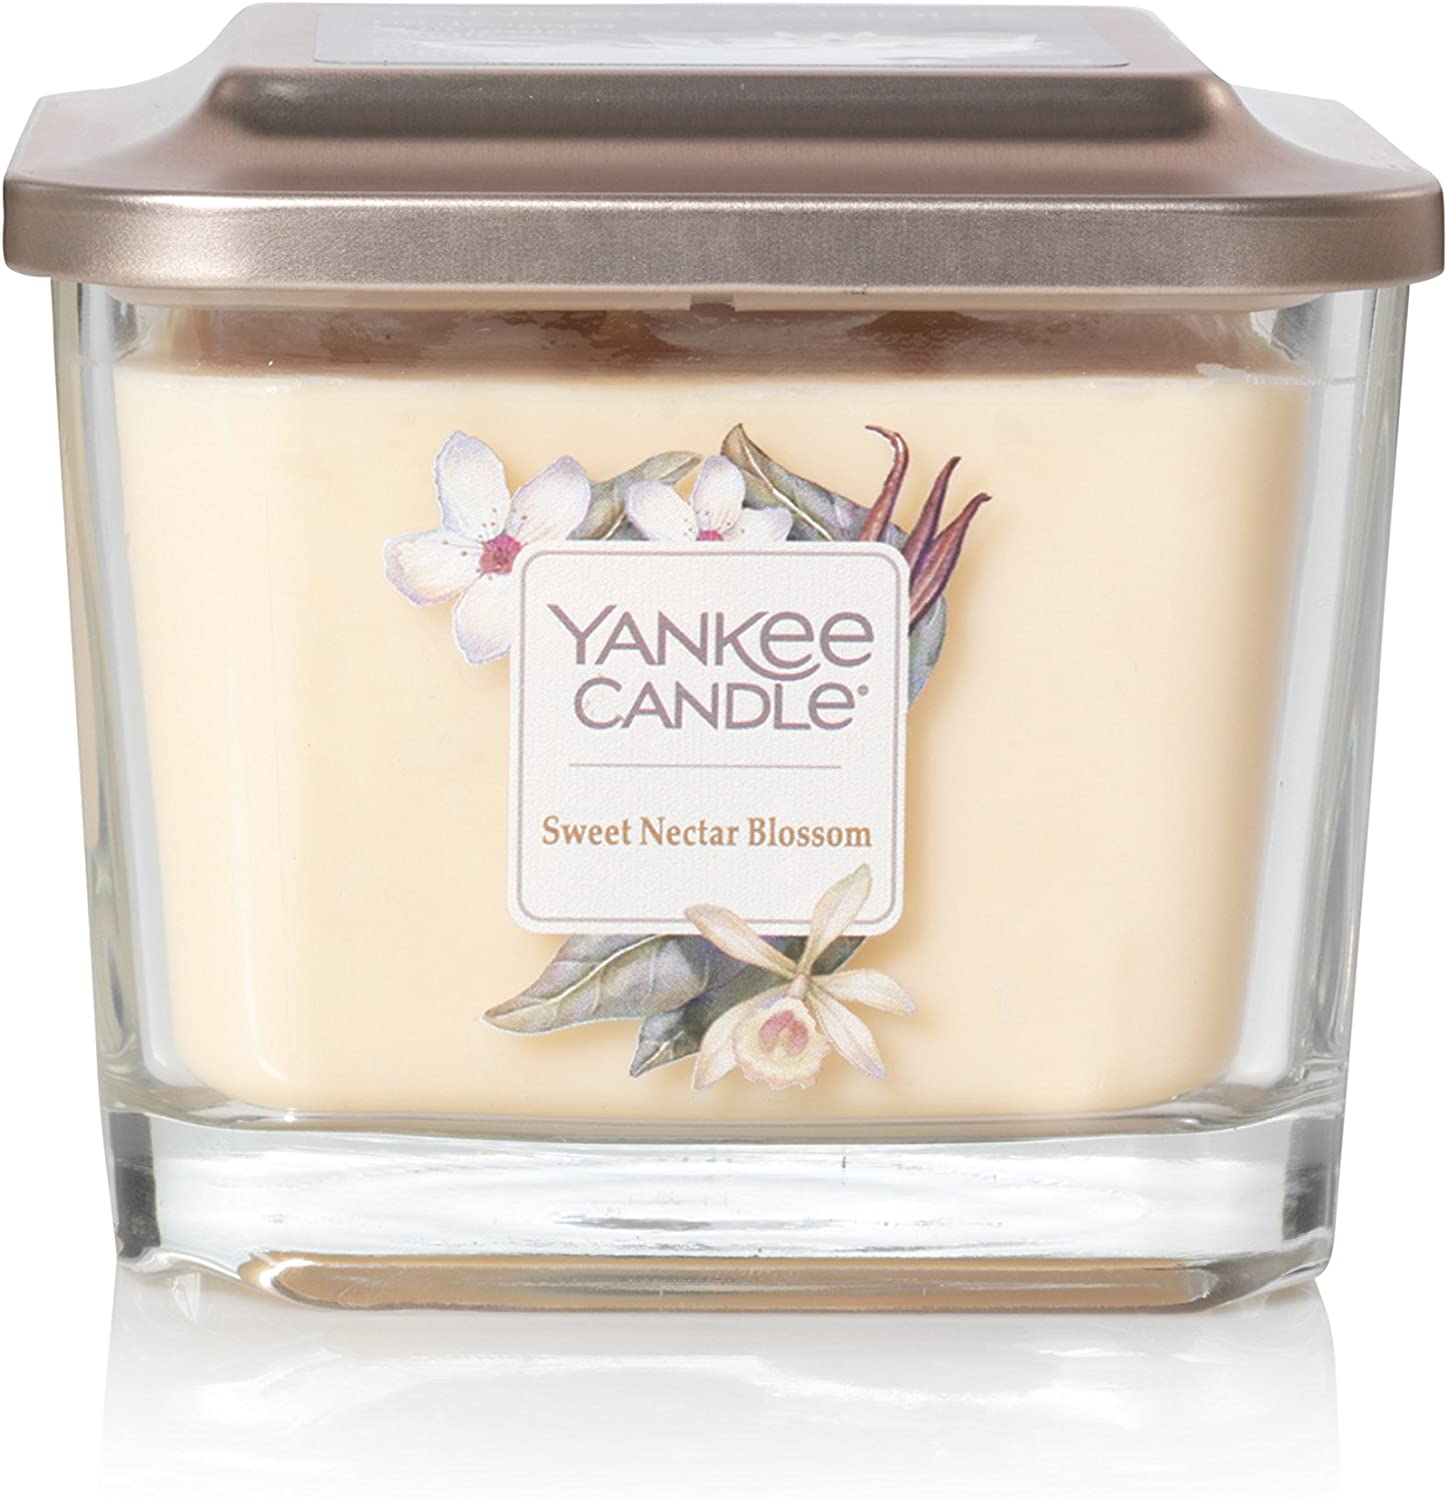 Yankee Candle Company Elevation Collection with Platform Lid, Medium 3-Wick Candle